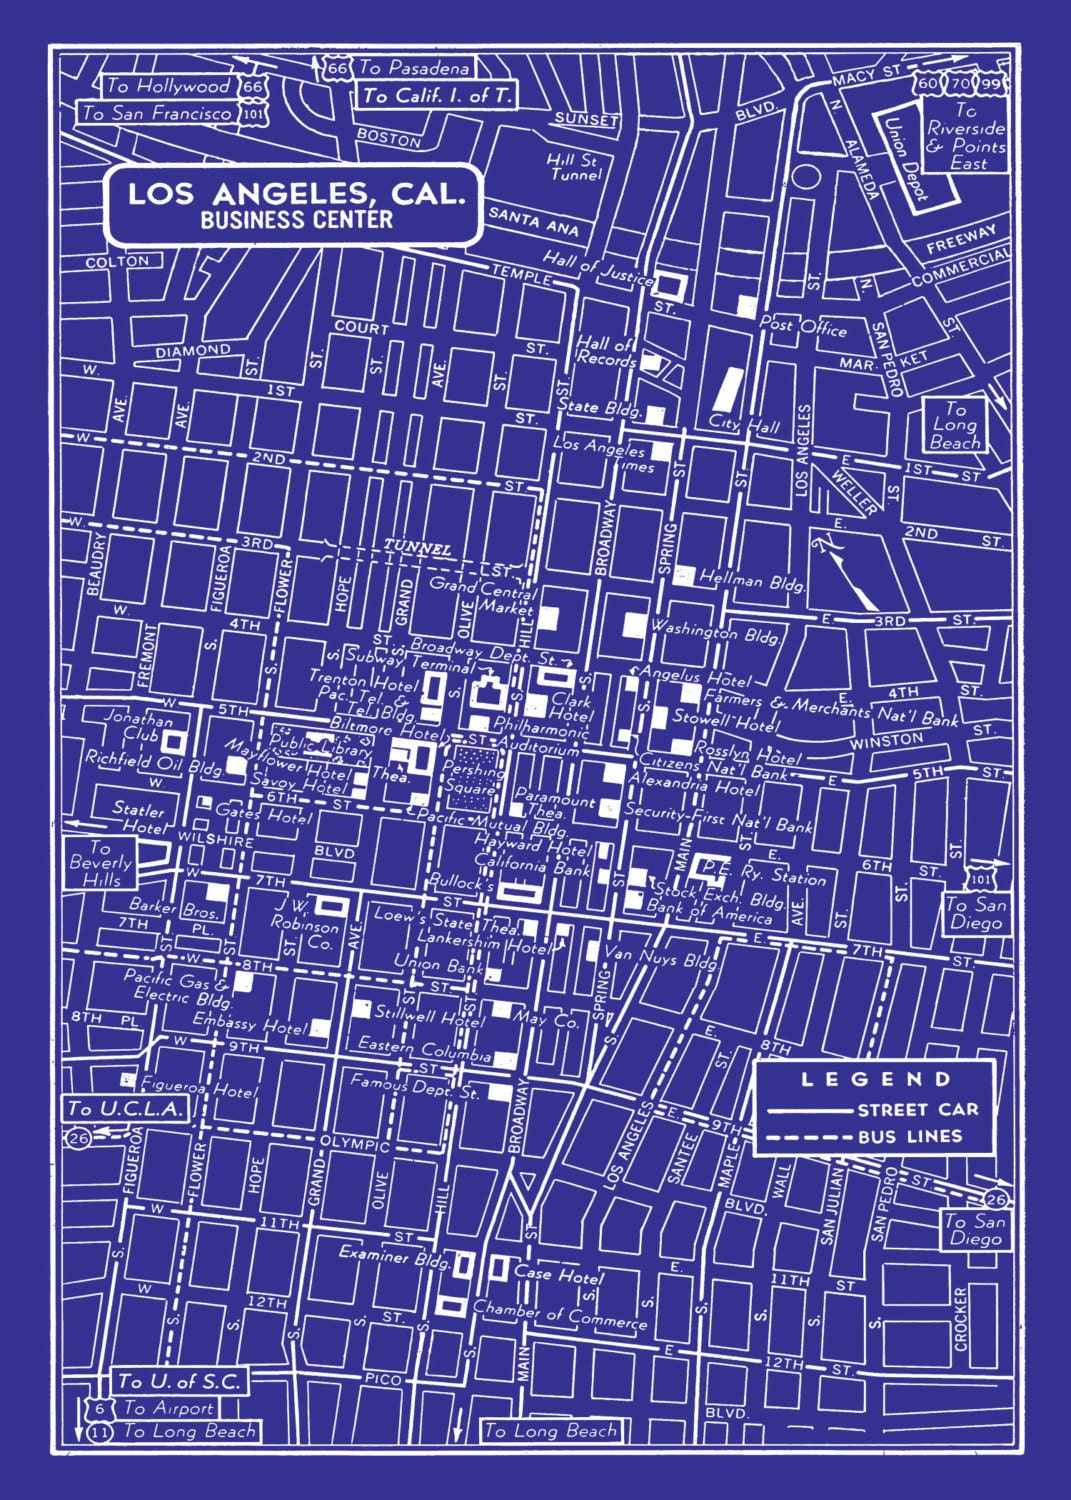 Vintage shopping downtown los angeles the best places for vintage vintage shopping downtown los angeles vintage map of downtown los angeles by malvernweather Choice Image